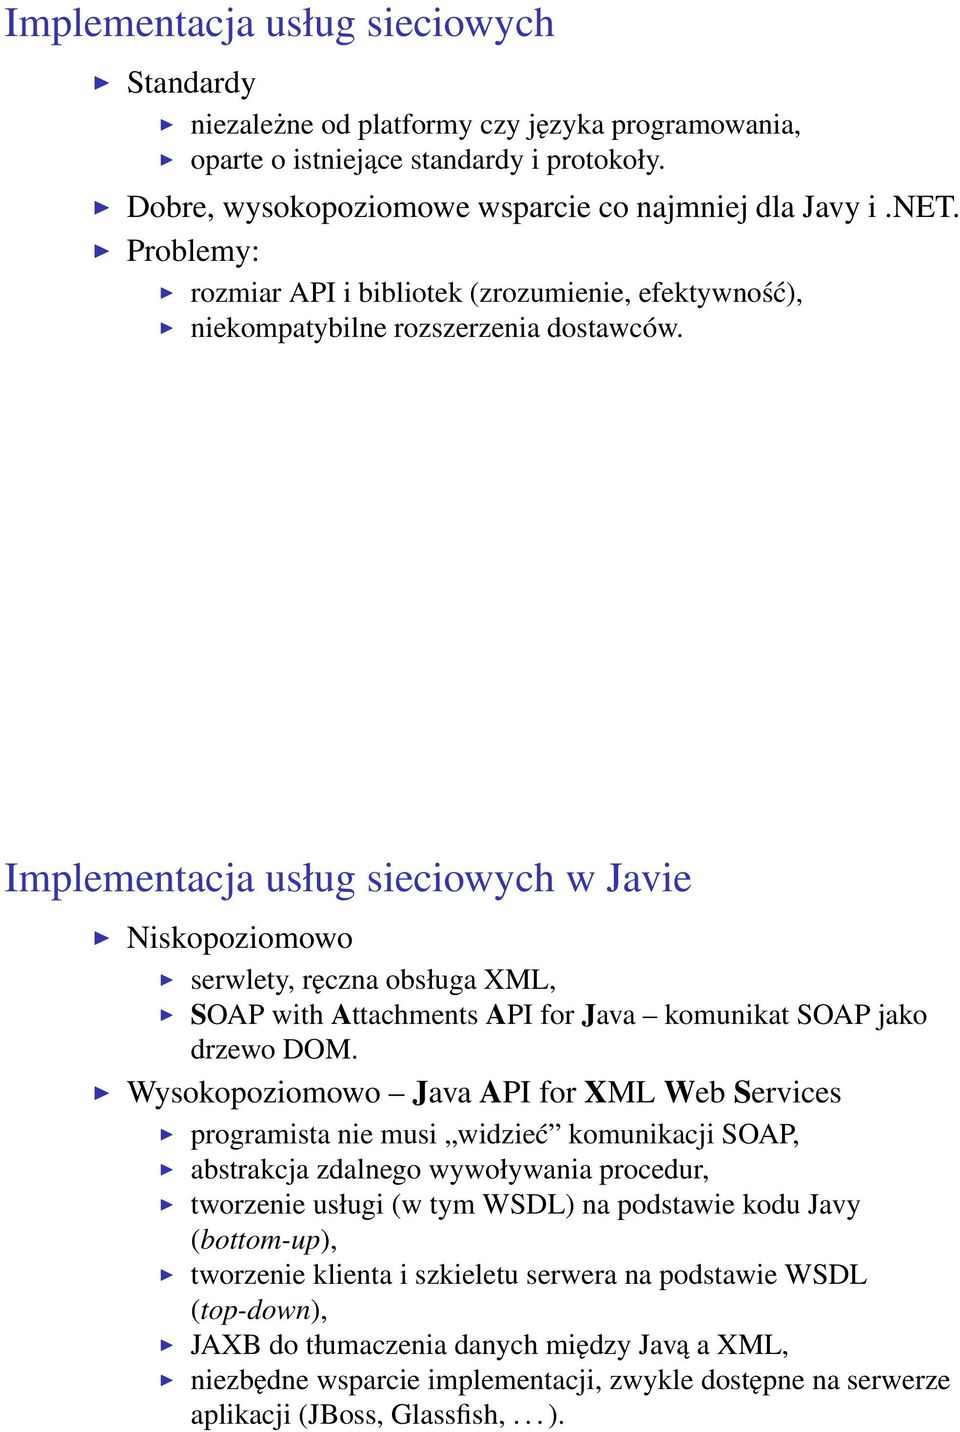 Implementacja usług sieciowych w Javie Niskopoziomowo serwlety, ręczna obsługa XML, SOAP with Attachments API for Java komunikat SOAP jako drzewo DOM.